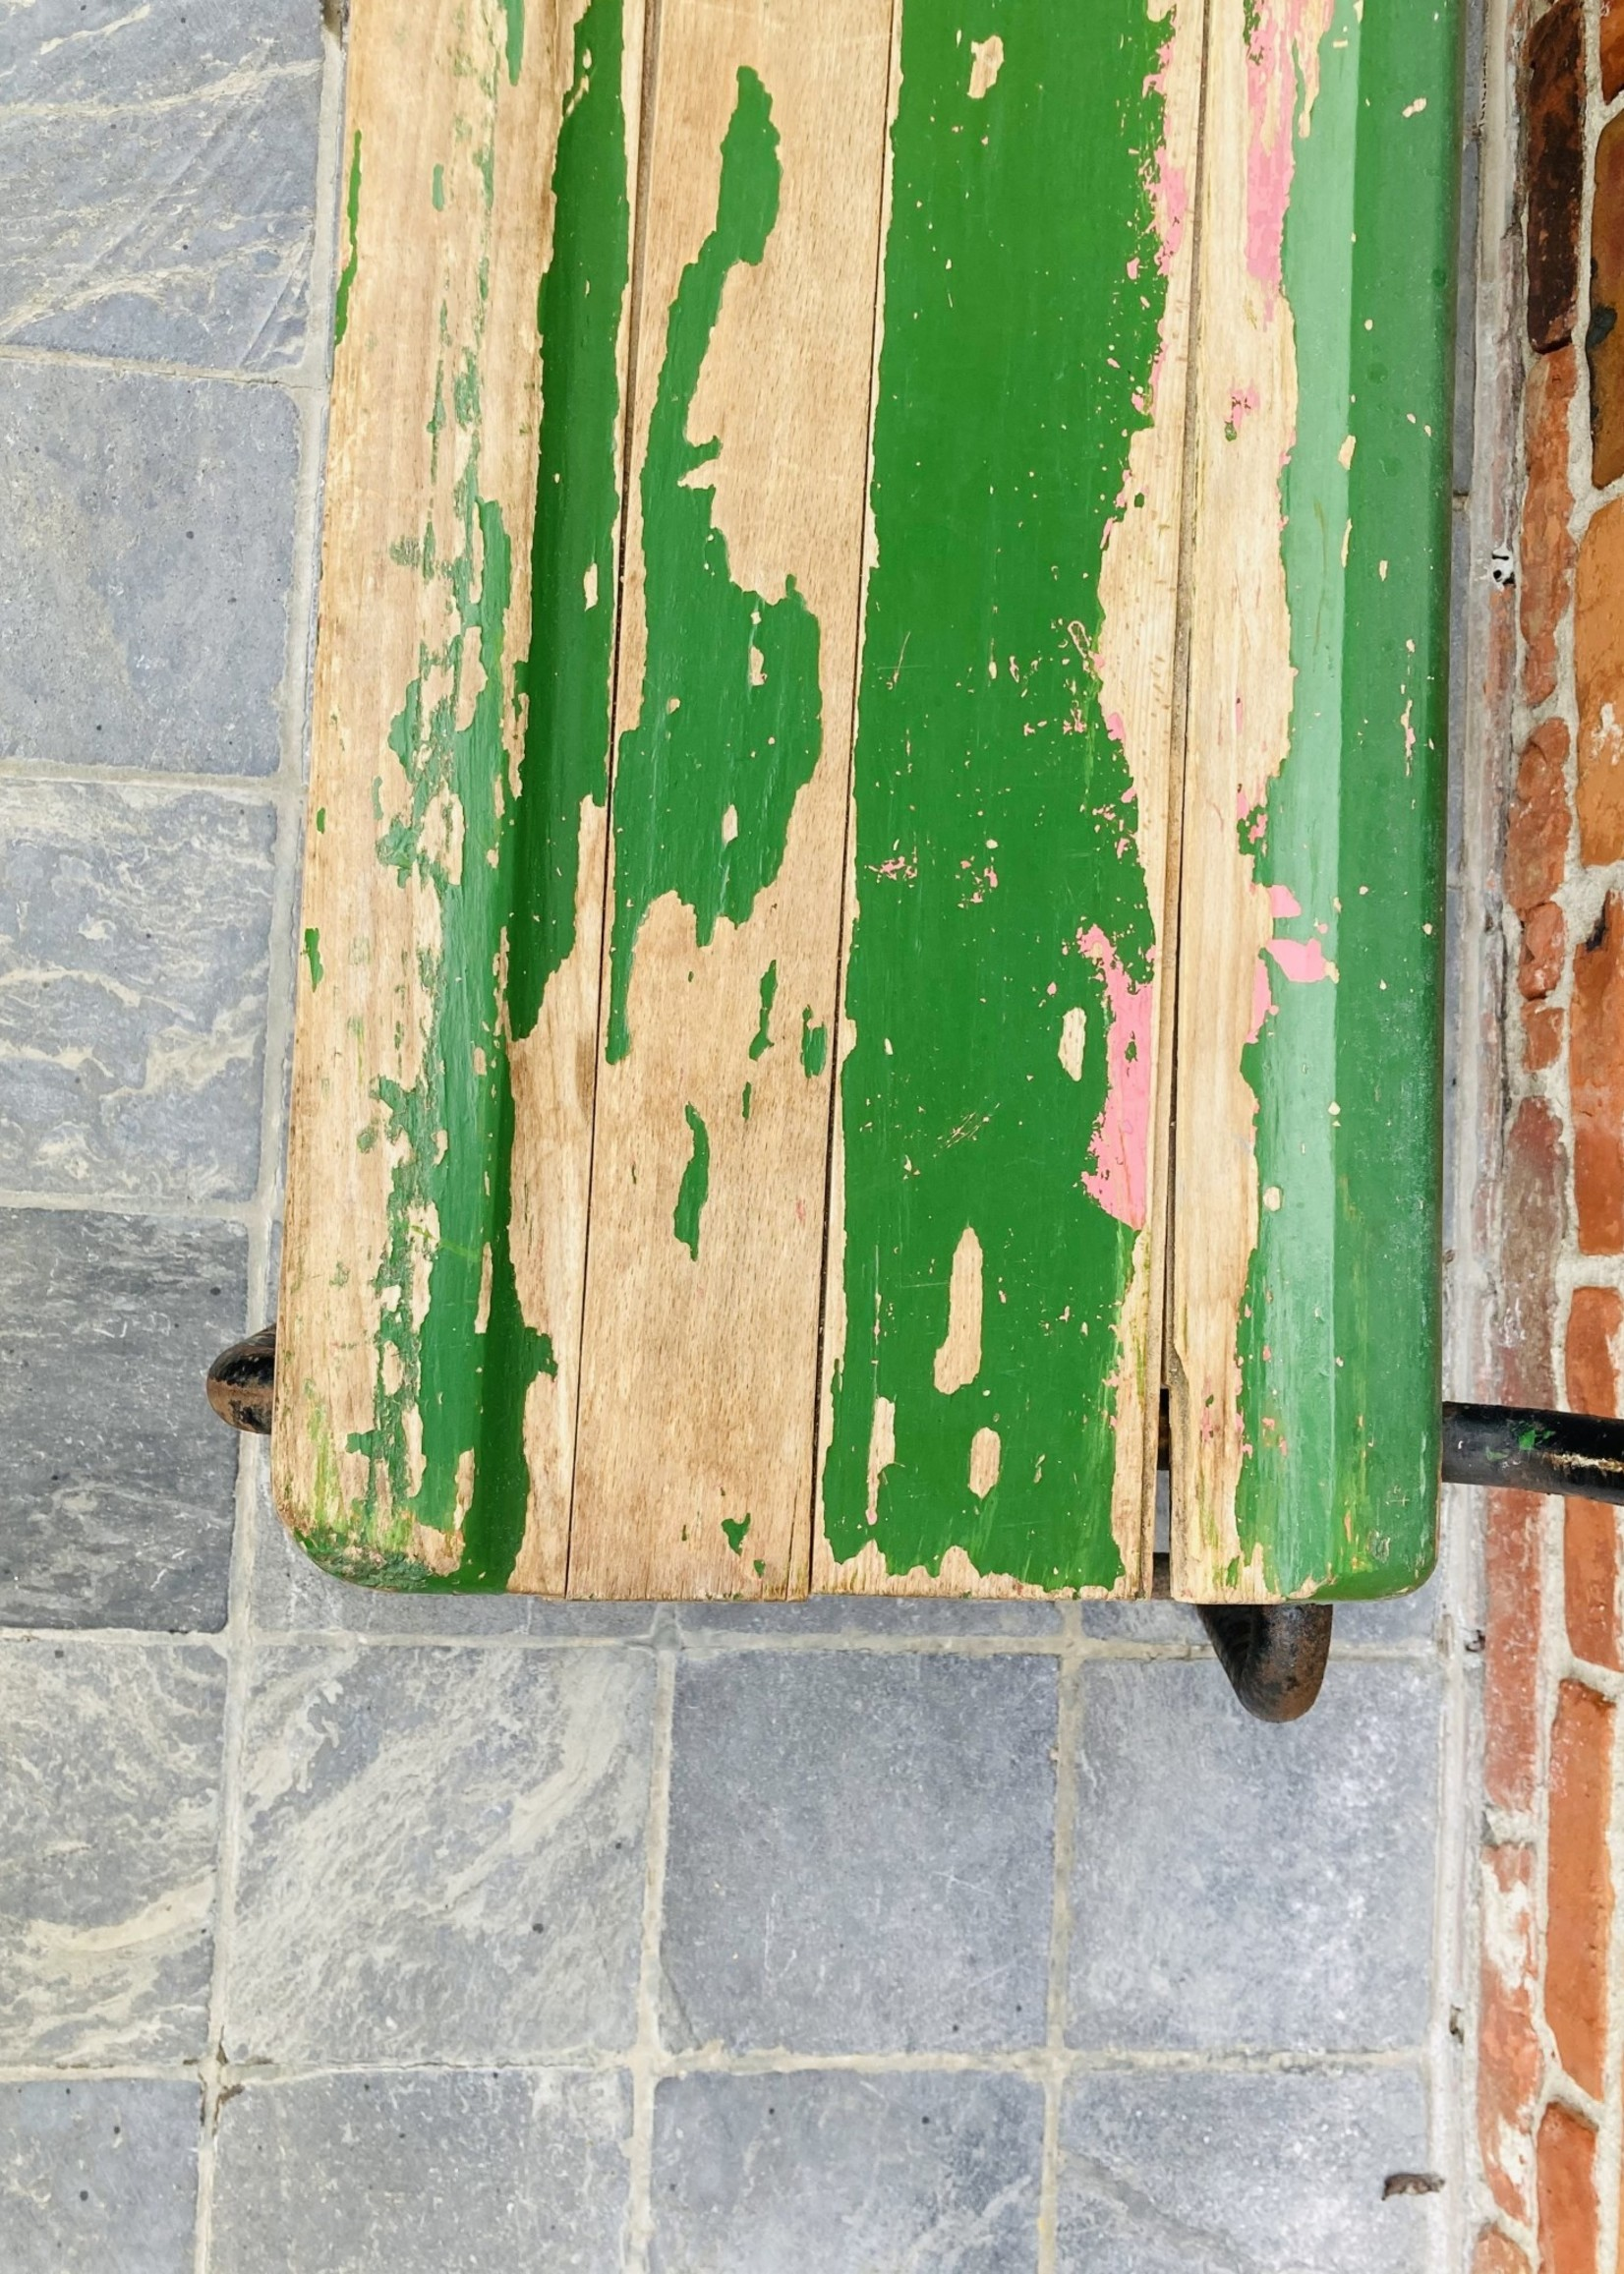 Antique green school bench with pink spots